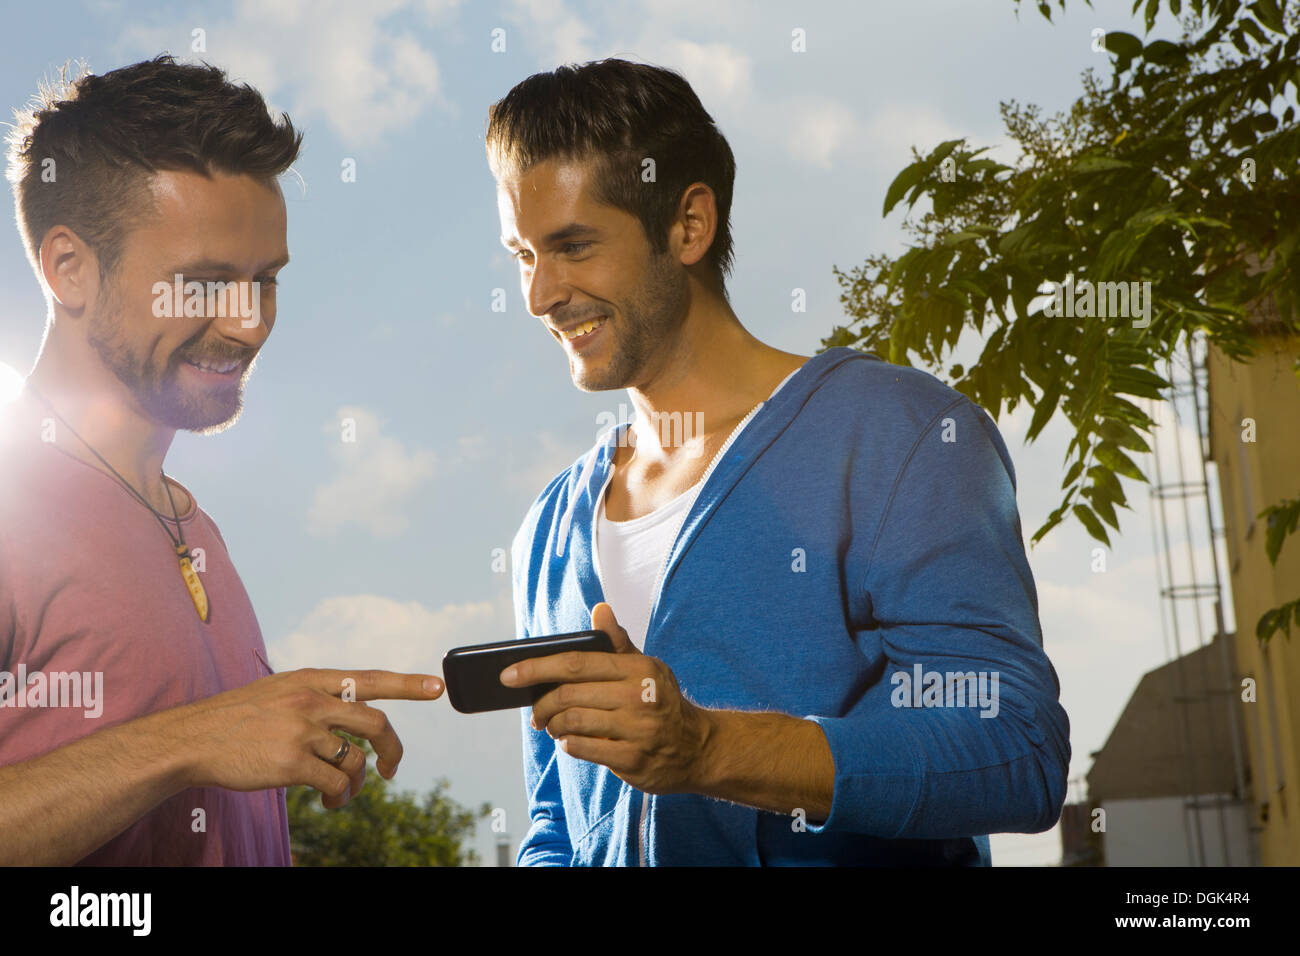 Two men with cell phone - Stock Image